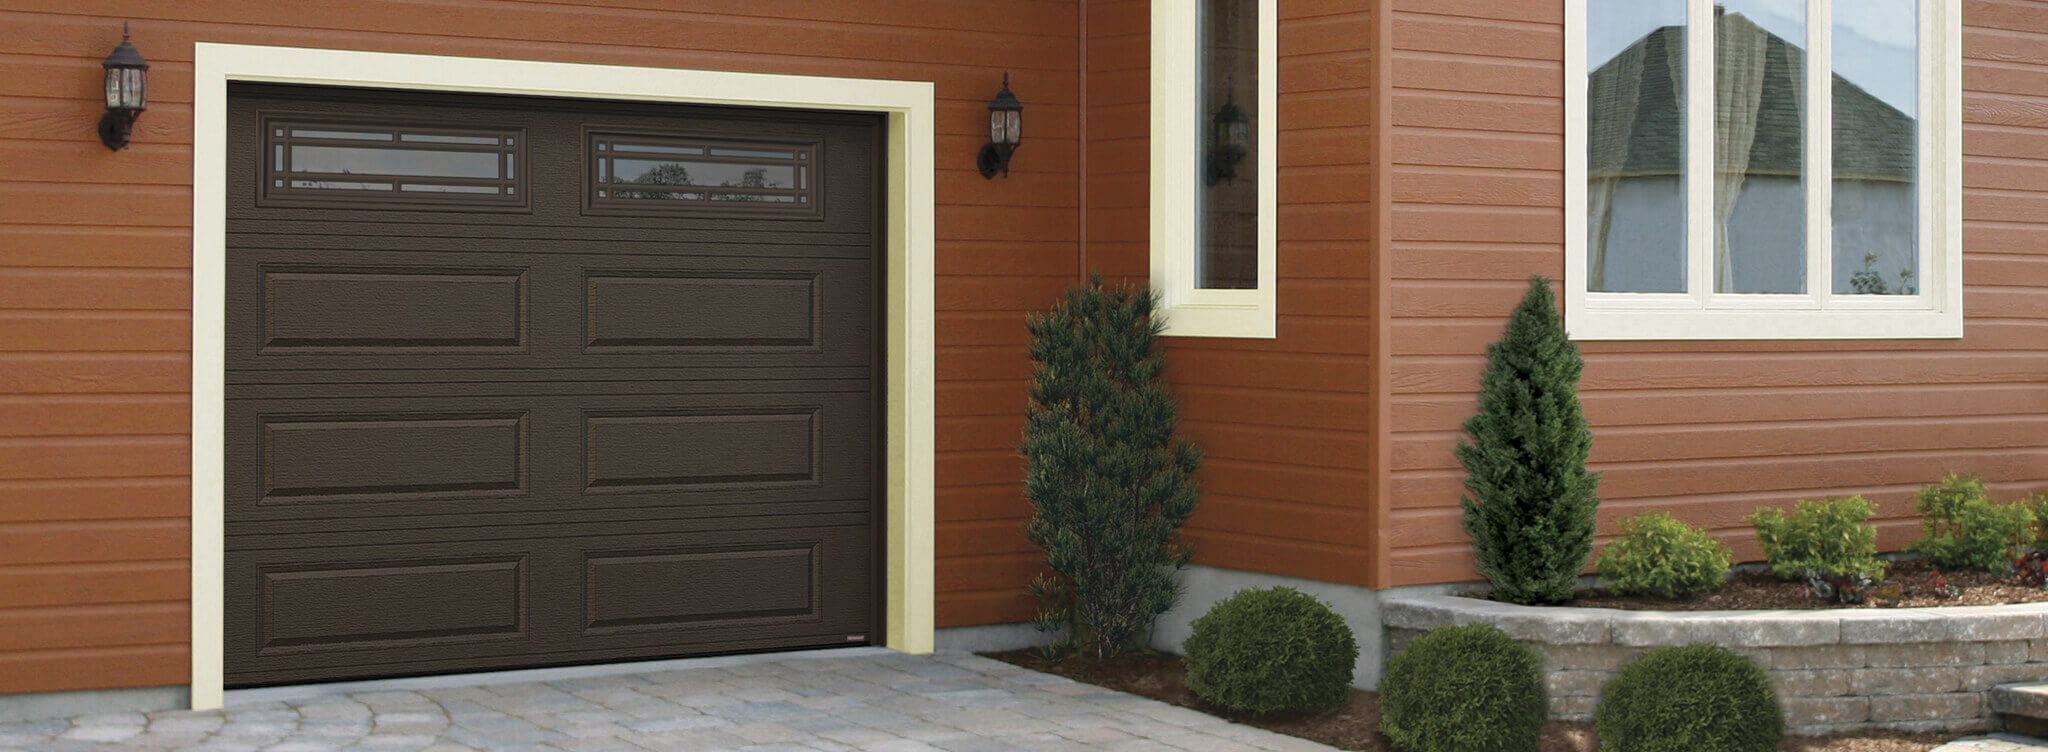 Acadia 138 Classic XL, 9' x 7', Moka Brown, windows with Prairie Inserts